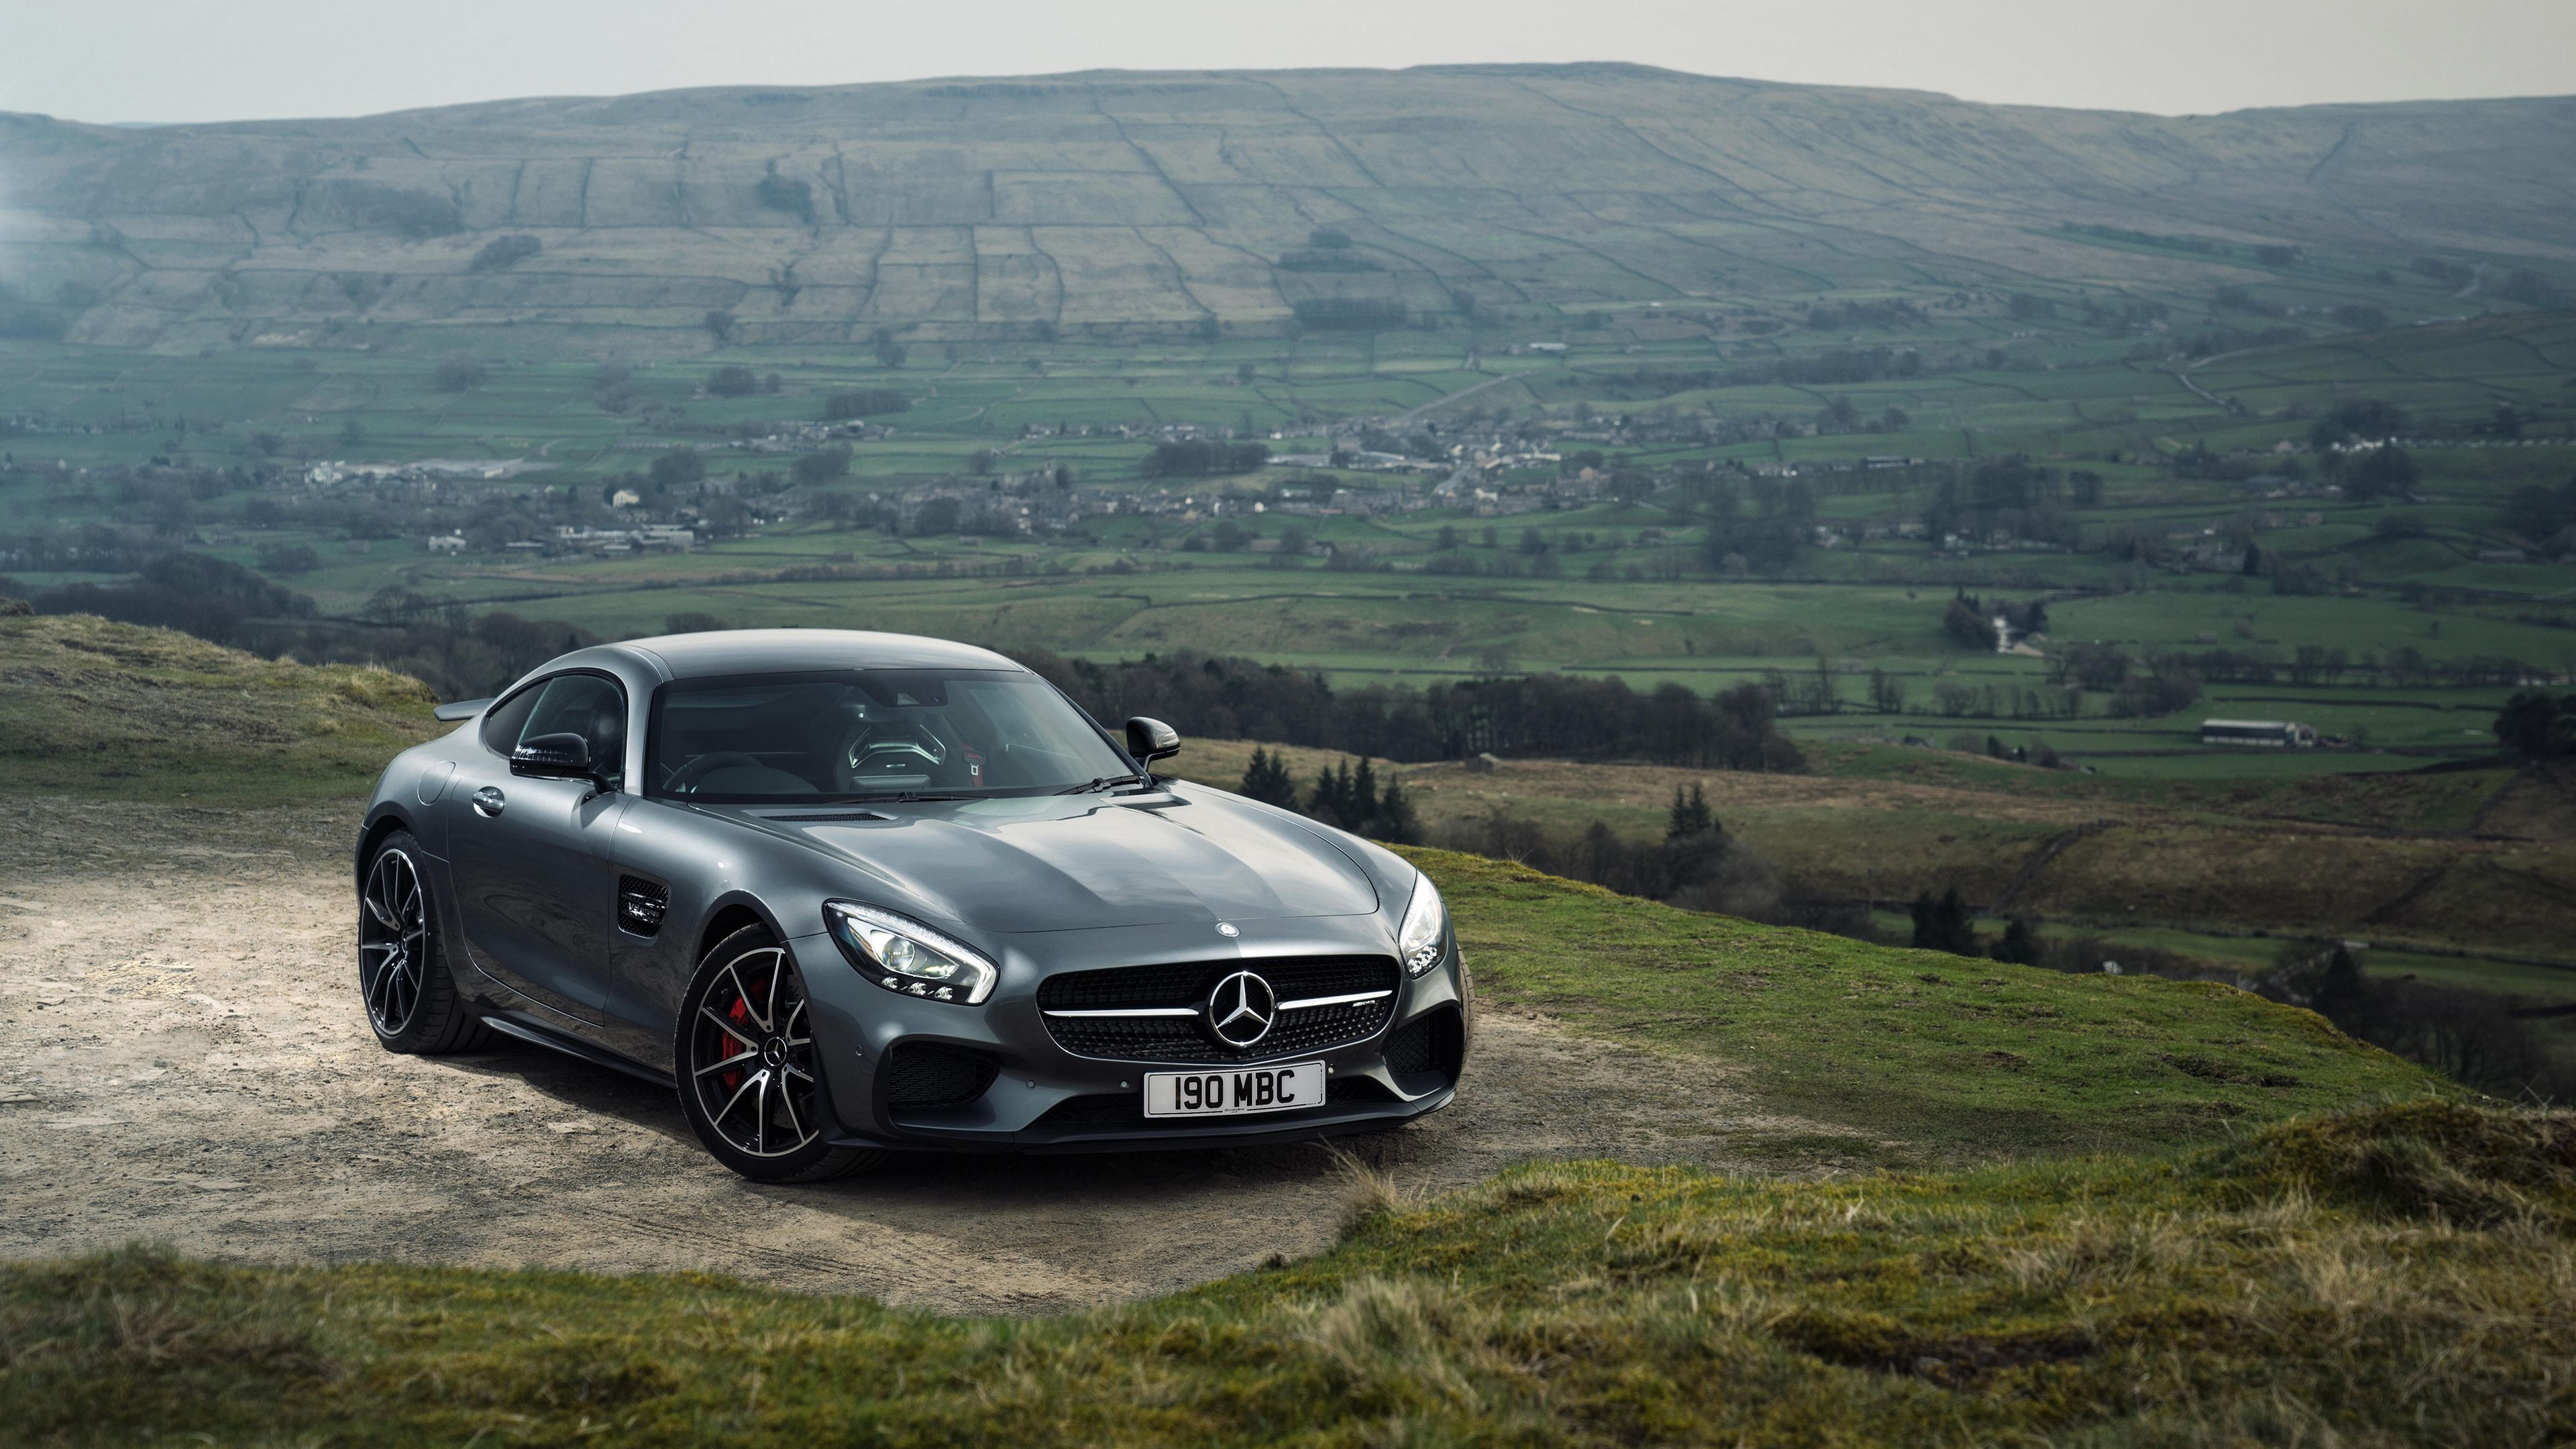 mercedes amg gt s gray side view 4k Mercedes gt s AMG